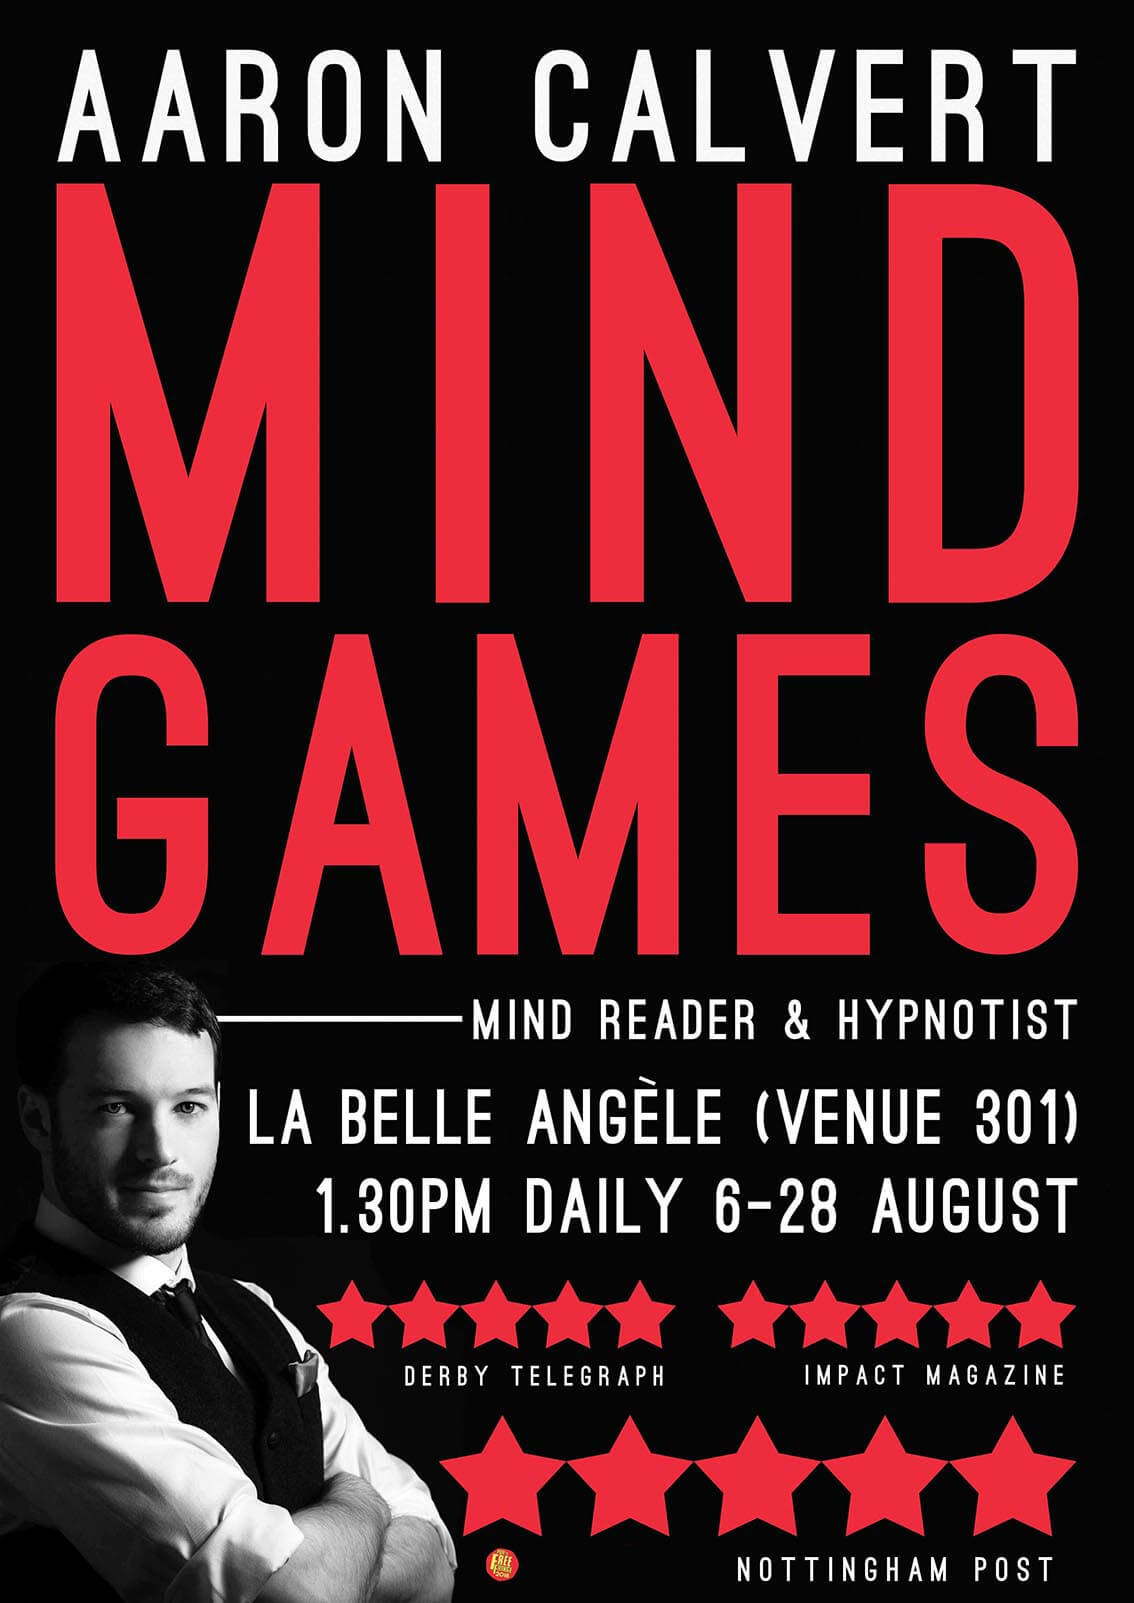 AARON CALVERT MIND GAMES EDFRINGE POSTER ON STAGE